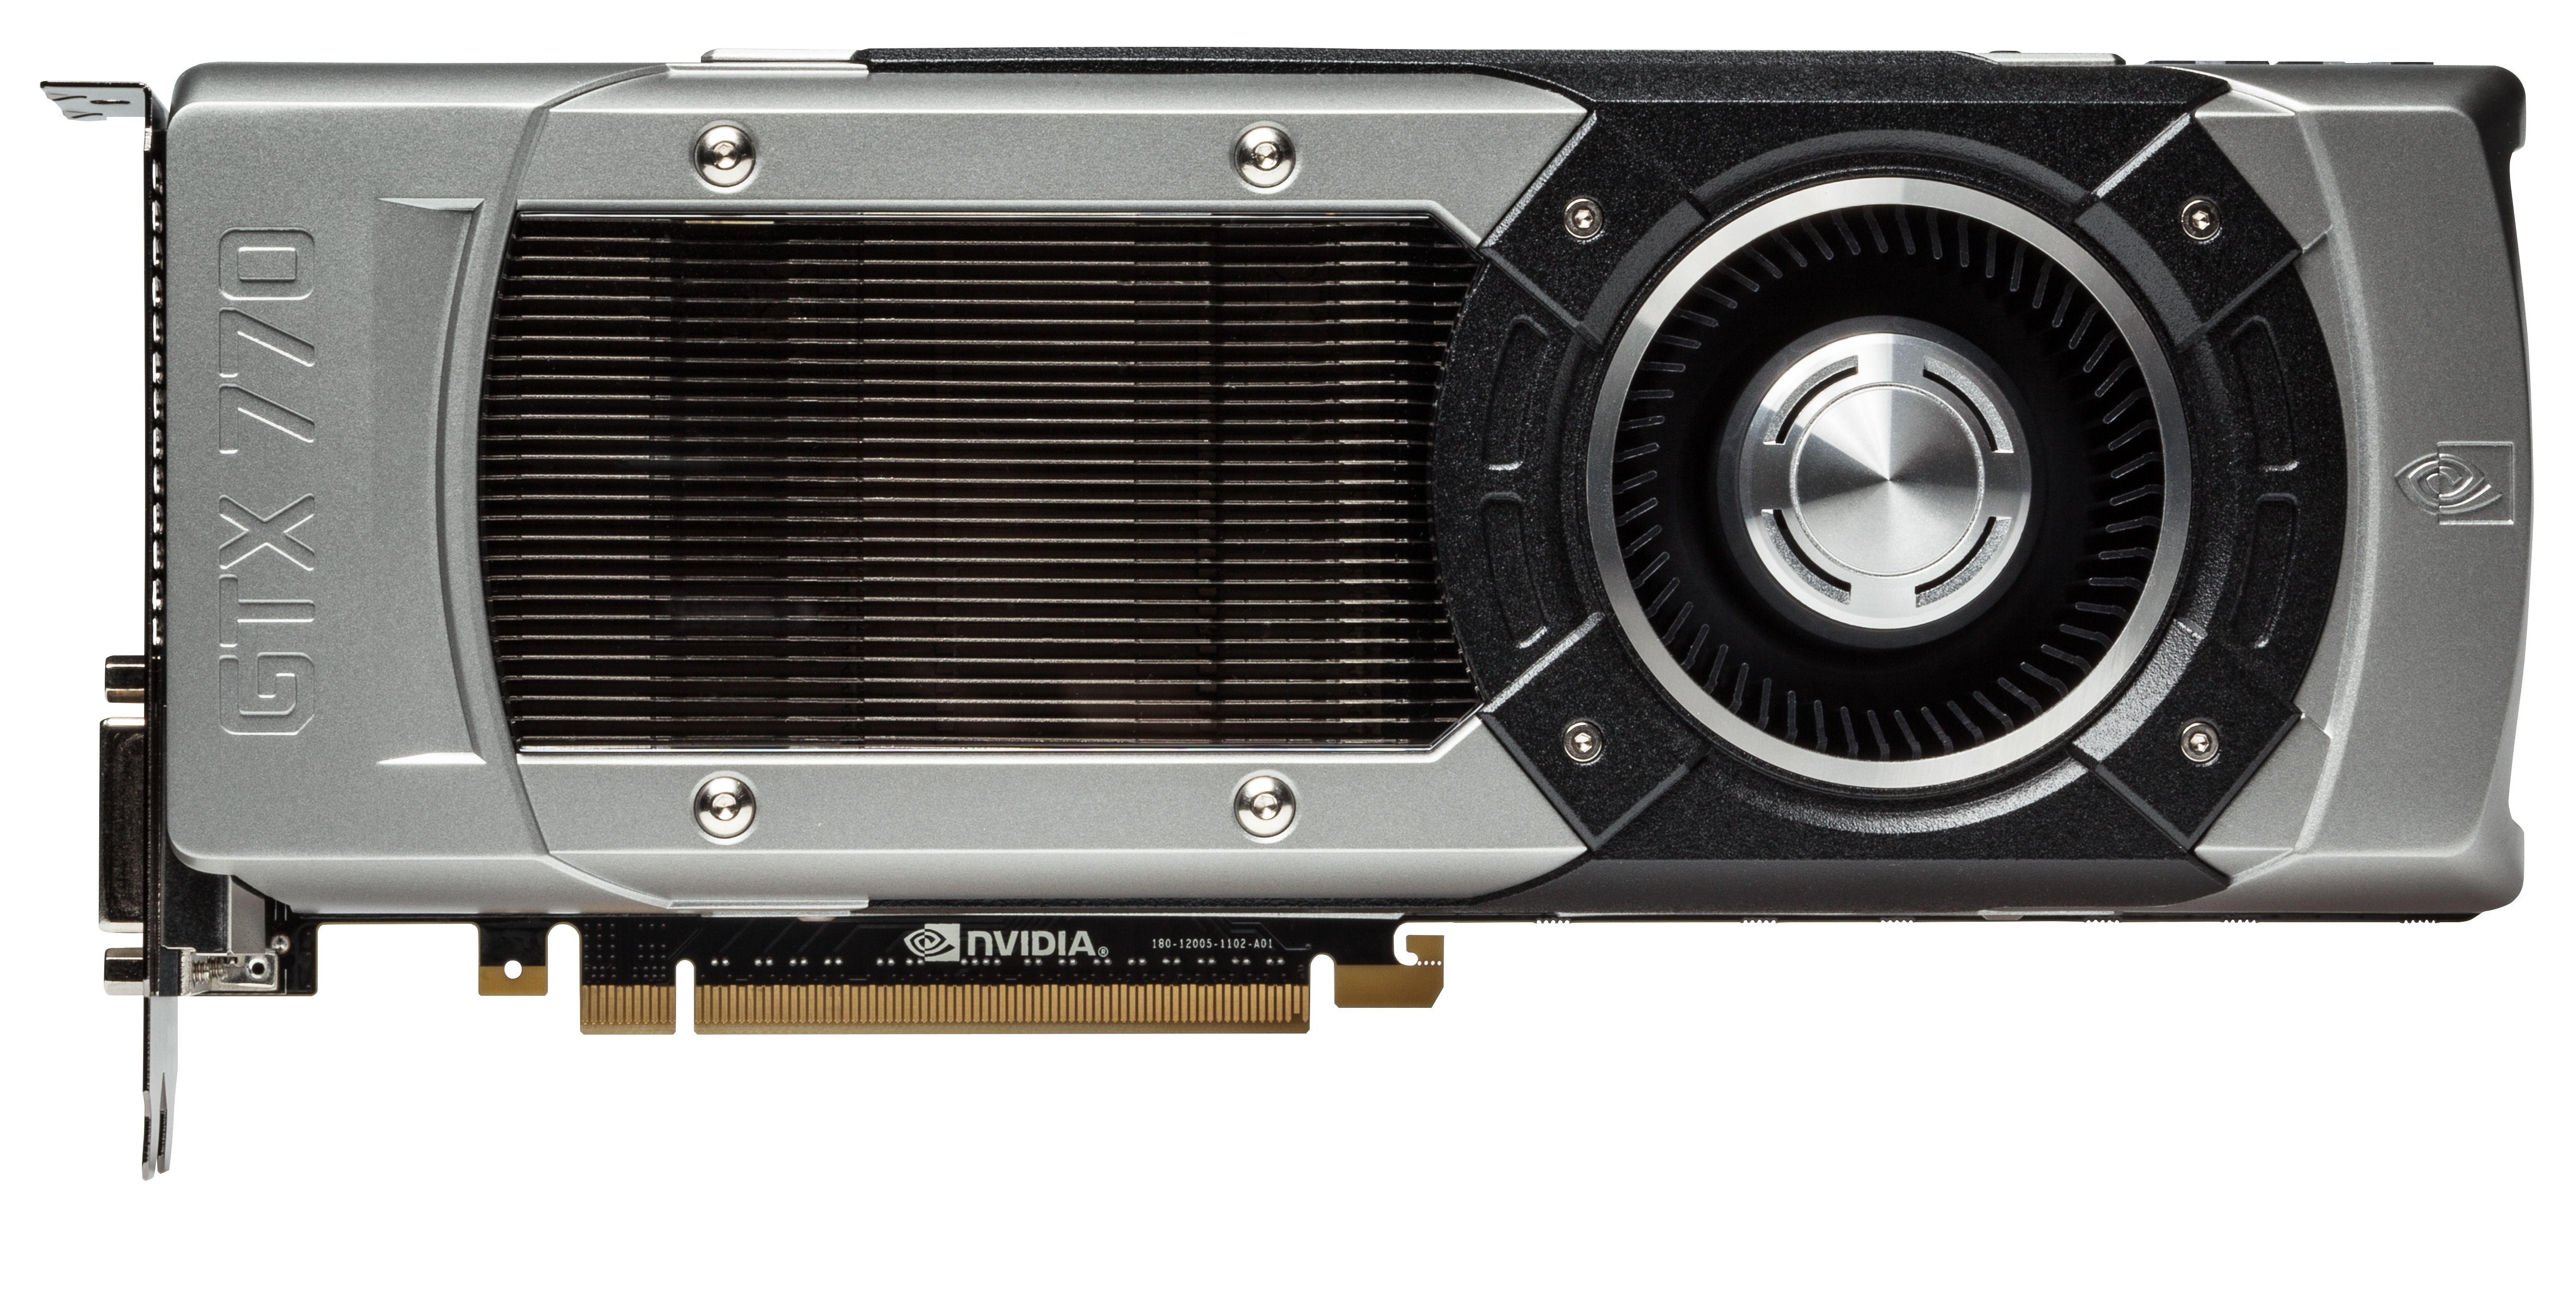 Meet the geforce gtx 770 nvidia geforce gtx 770 review for Architecture 770